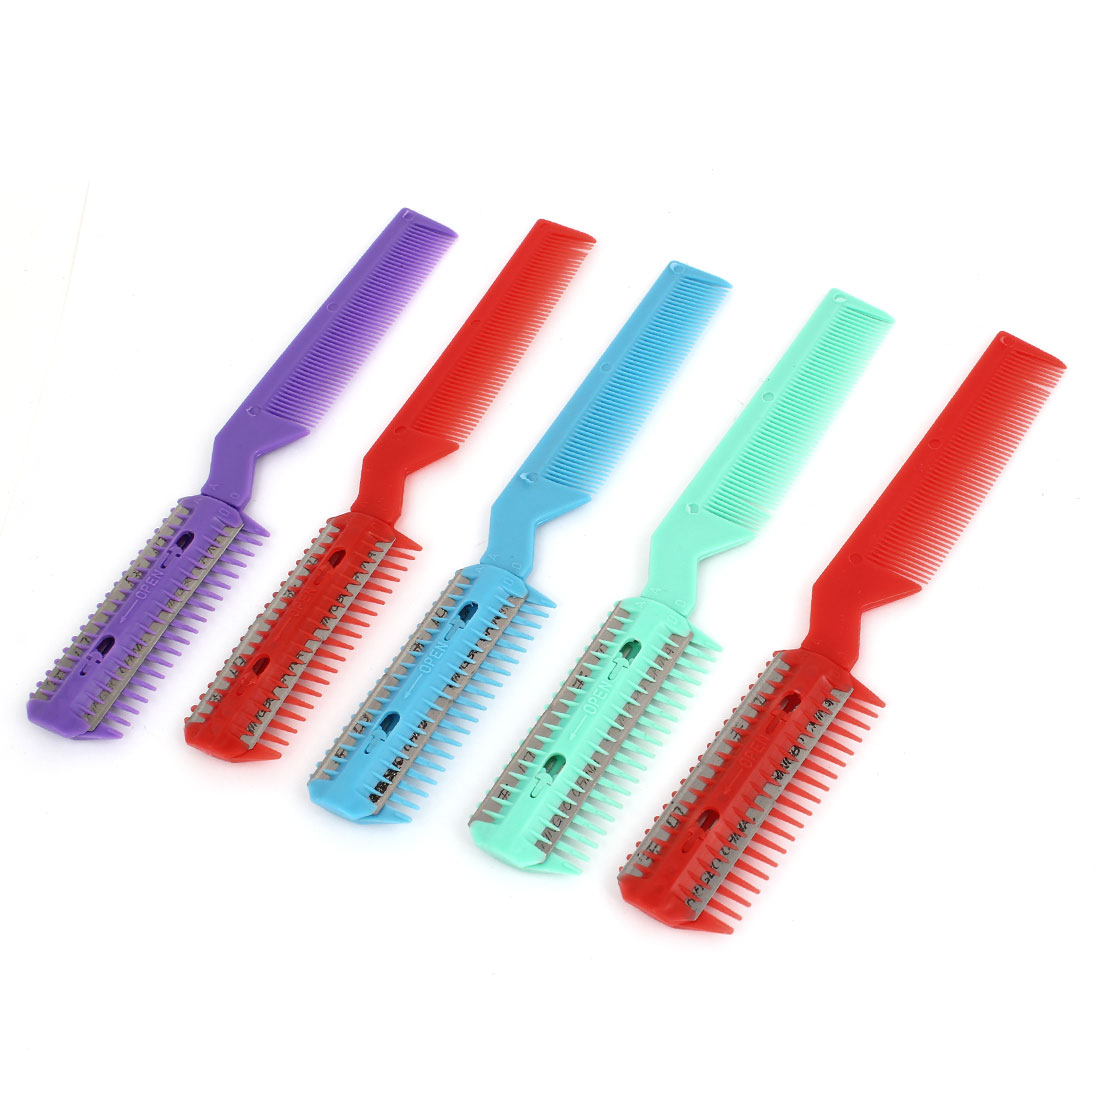 5 Pcs Assorted Color Plastic Double End Razor Blade Hair Cutter Comb Trimmer Tool